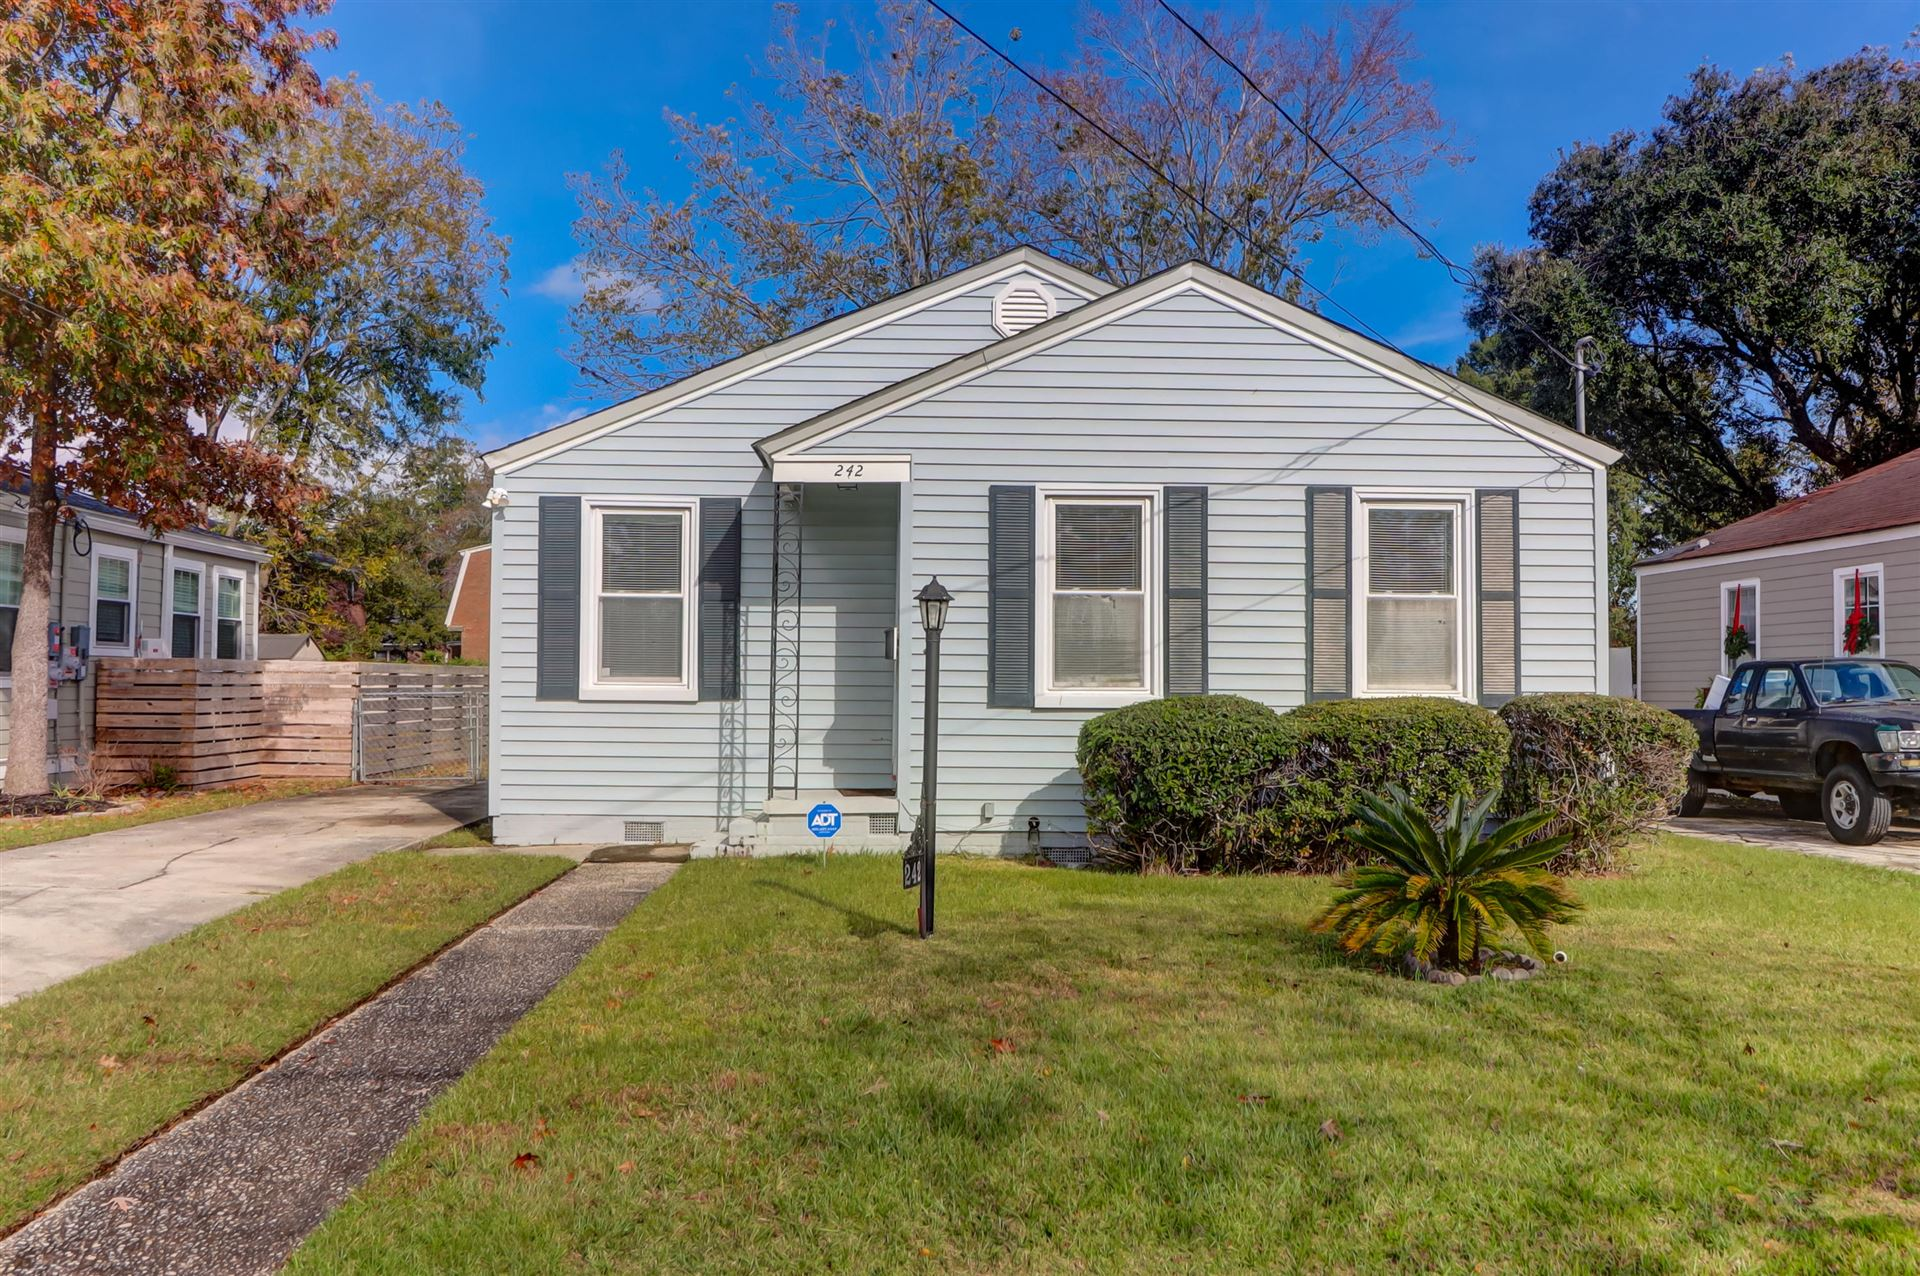 Photo of 242 W Poplar Street, Charleston, SC 29403 (MLS # 20032068)